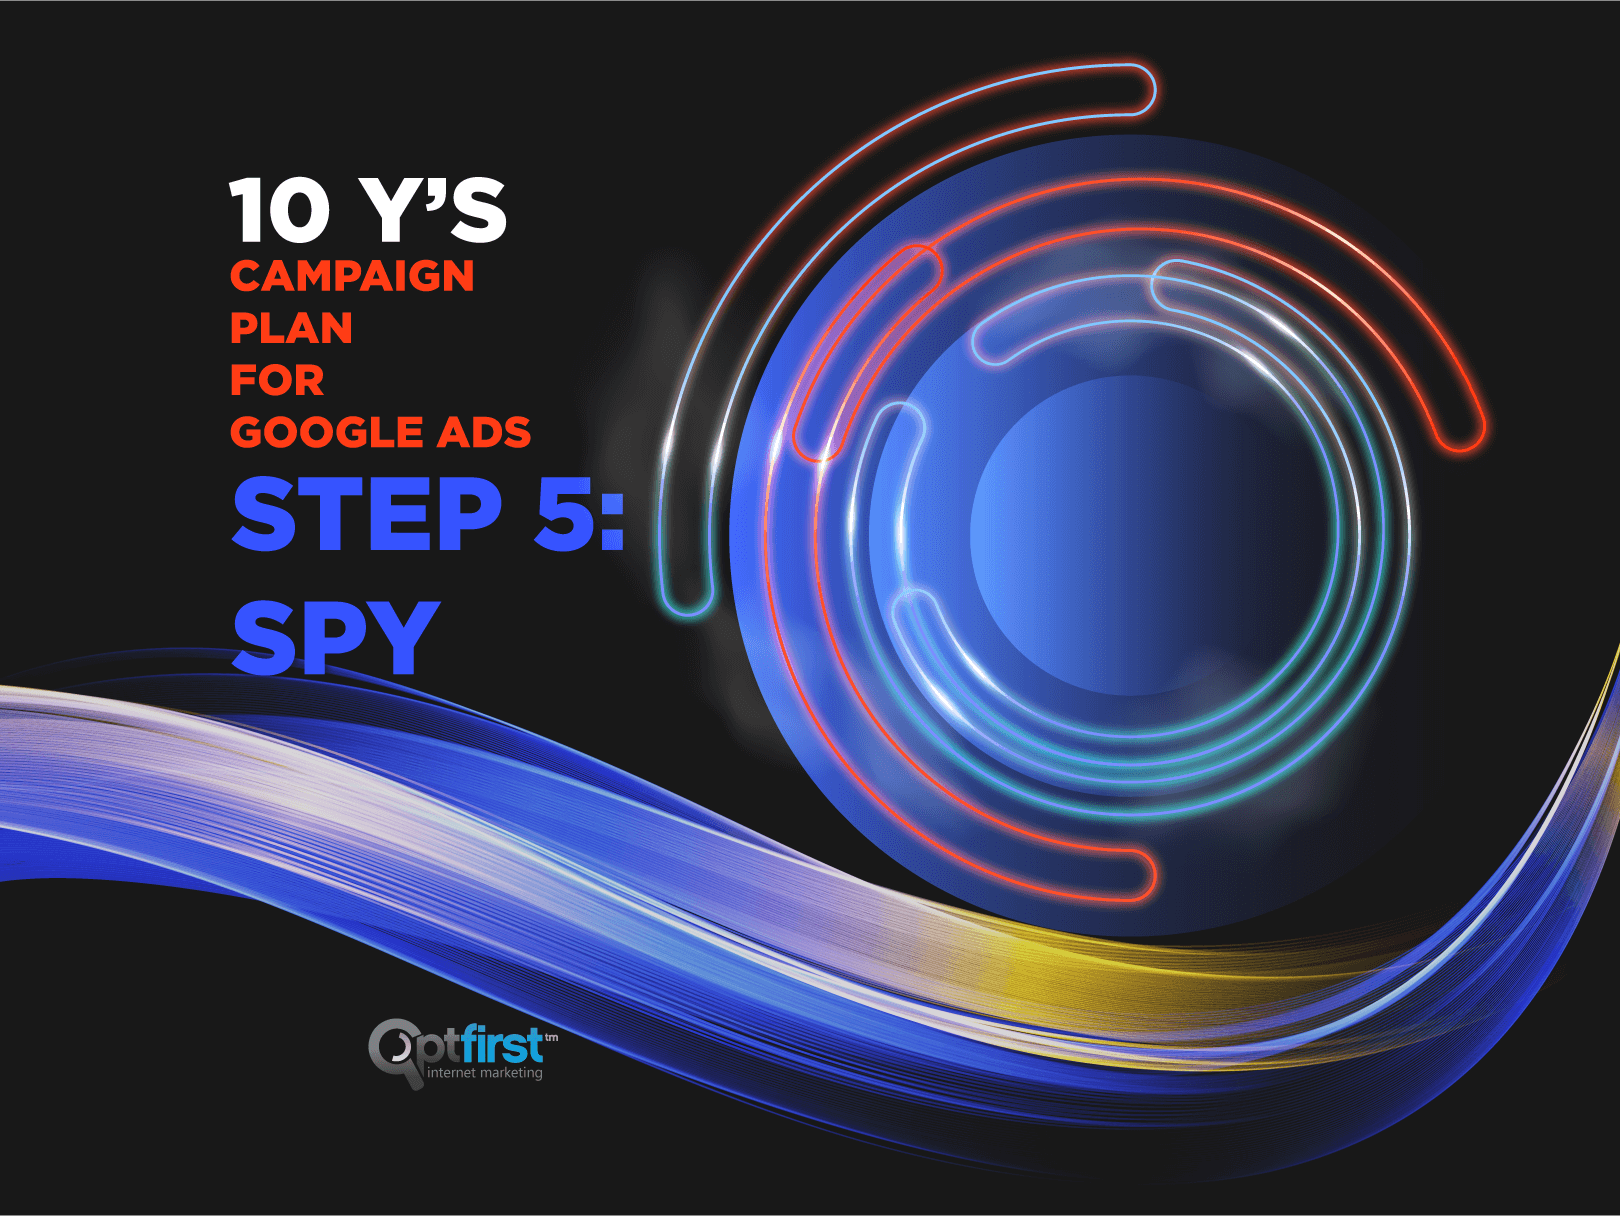 SEM Campaigns: 10 Y's Campaign Plan for Google Ads – Step 5: Spy